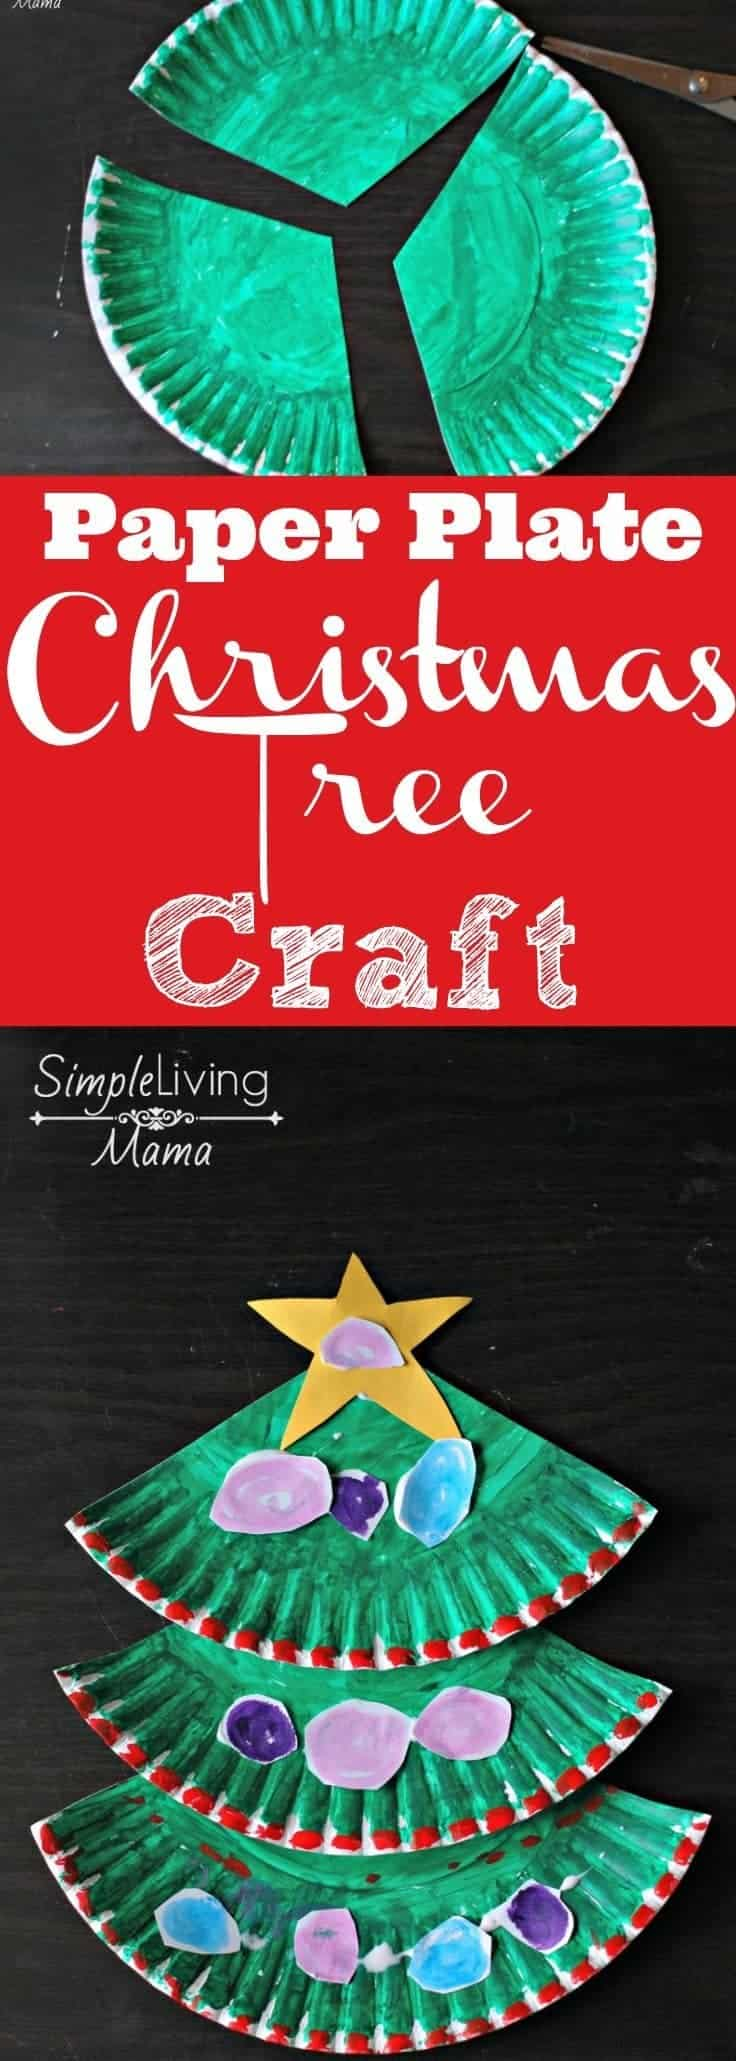 christmas tree crafts paper plate tree craft simple living 1314